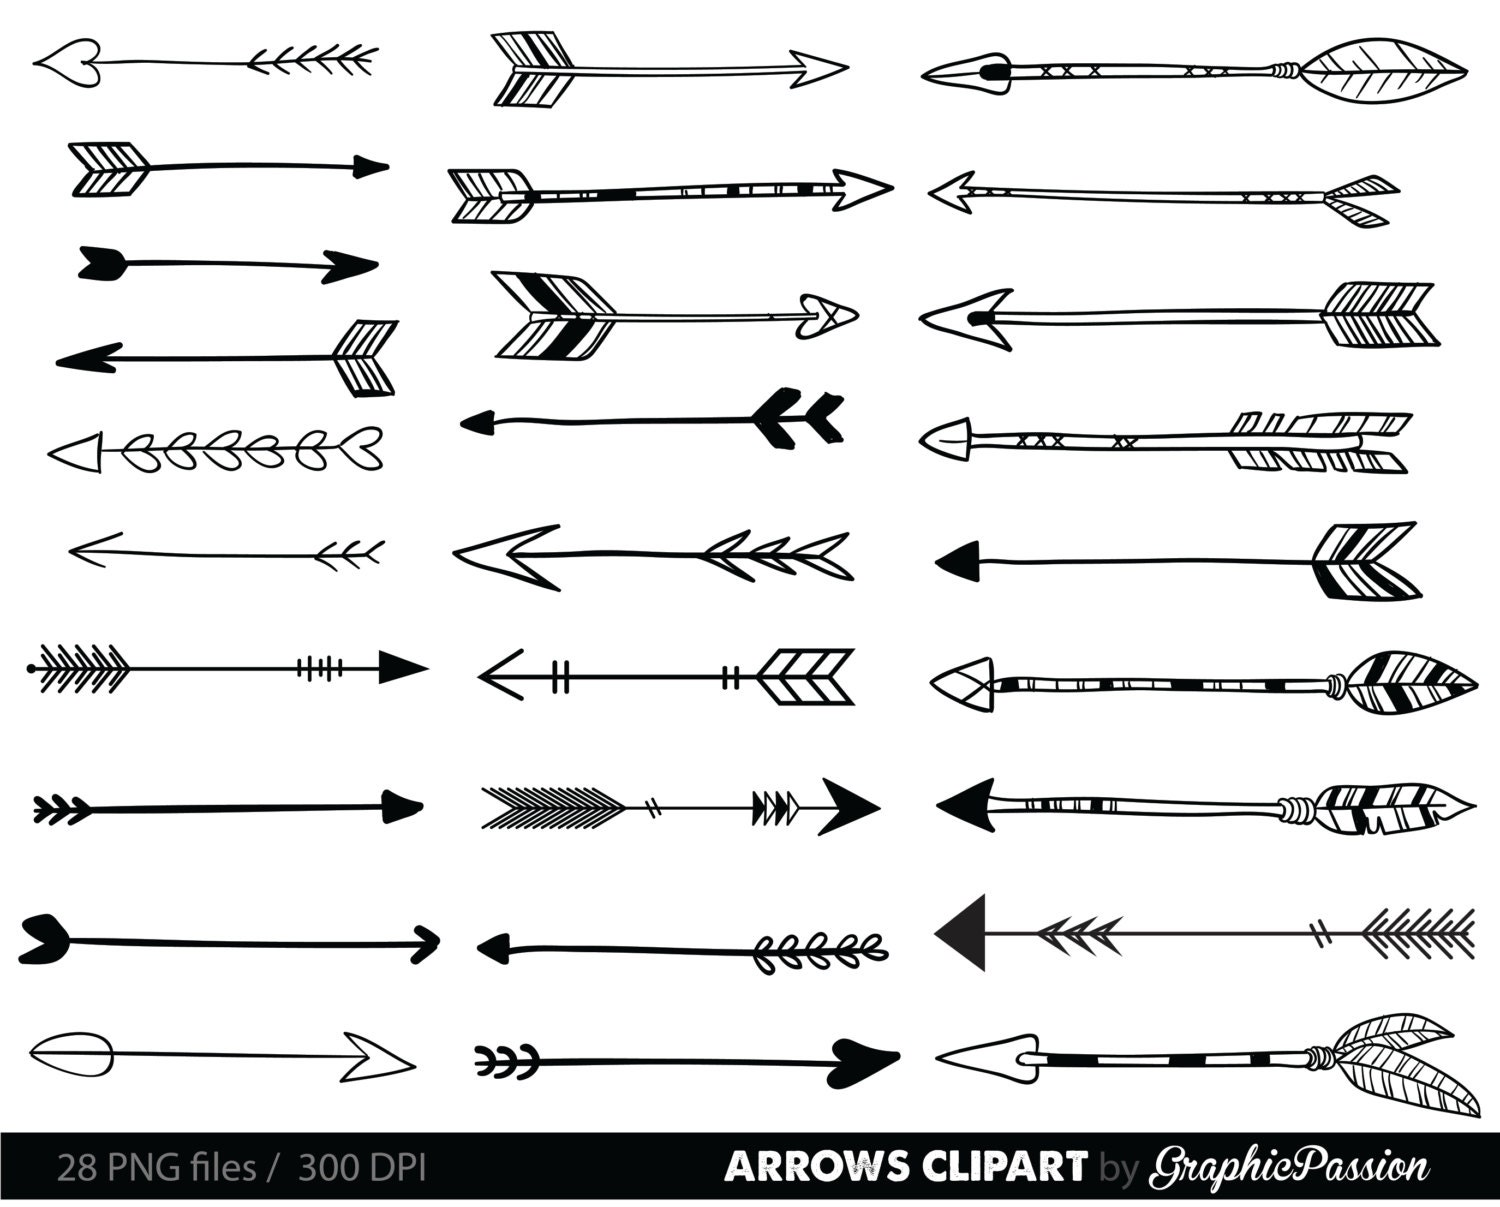 Line Art Arrow : Arrows clip art tribal arrow clipart archery hand drawn